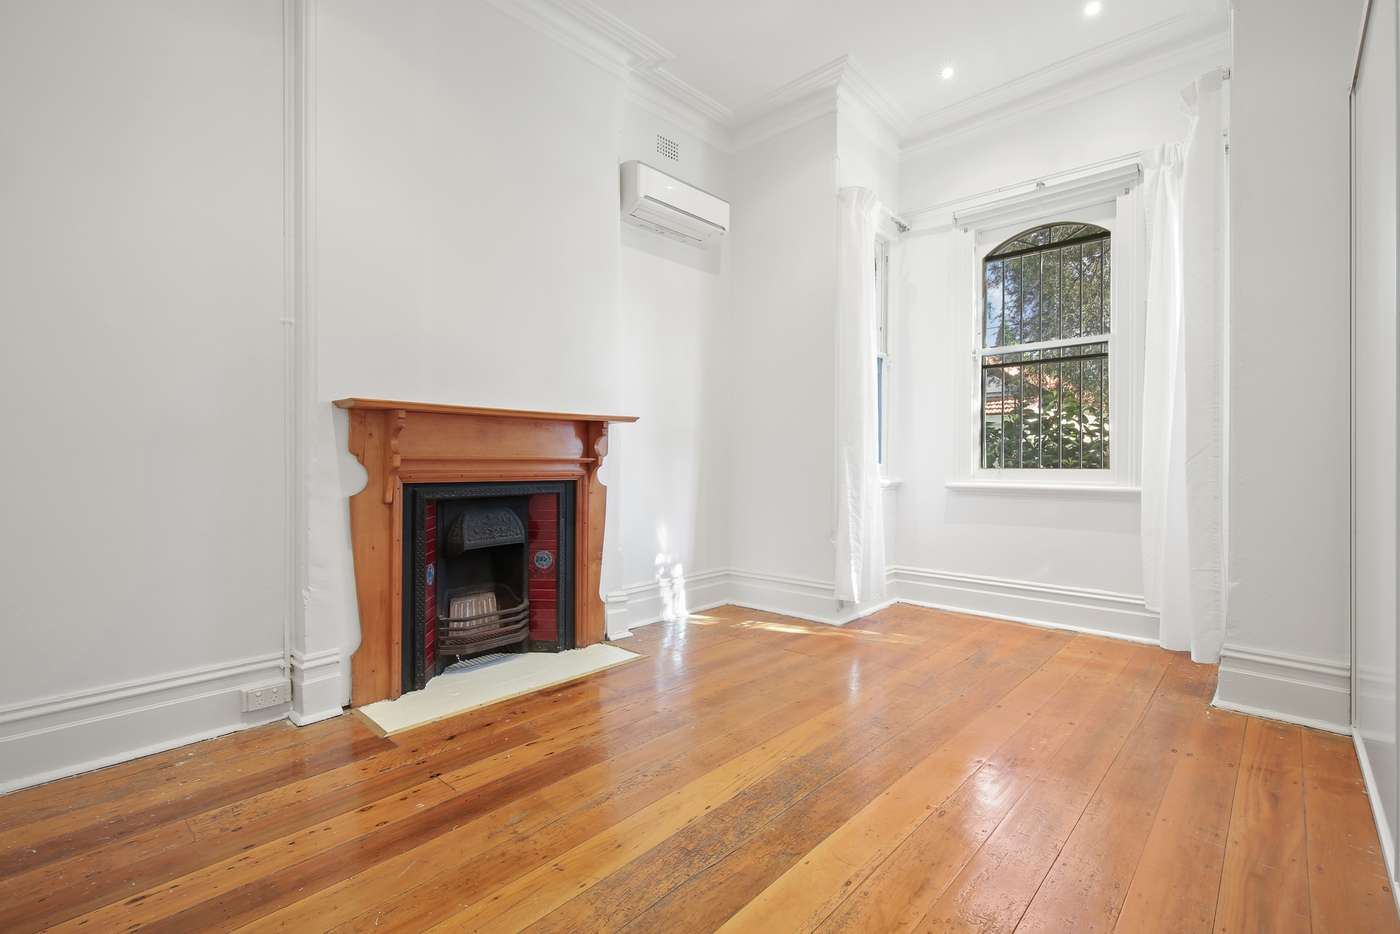 Main view of Homely house listing, 5 Church Street, Petersham NSW 2049